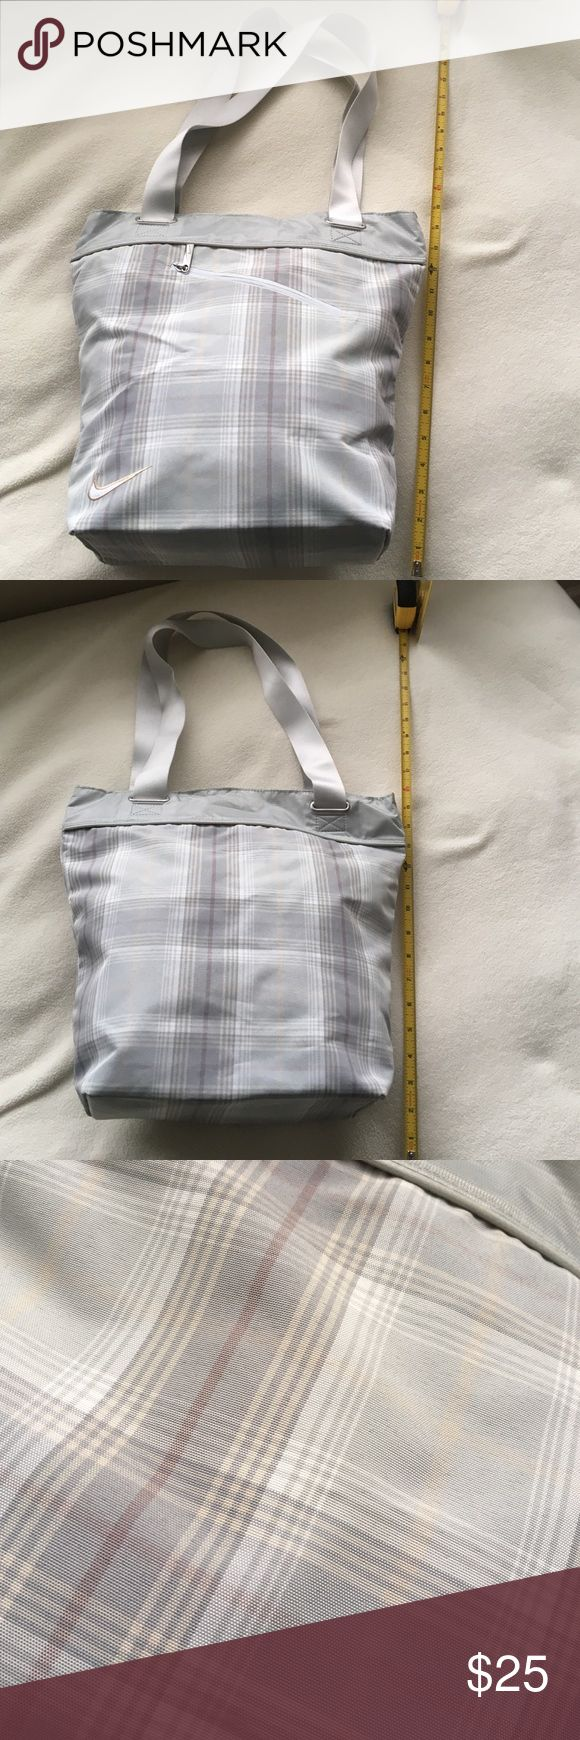 "Nike tote bag Nike tote bag. Perfect for those days when going from work, to the gym, to the store transition bag! Fits comfortably over your shoulder and is about 14"" deep and 11"" wide. Has been used a few times, but still in great condition. Minimal signs of wear shown in third picture. It is a grey and white plaid color patten. Nike Bags Totes"